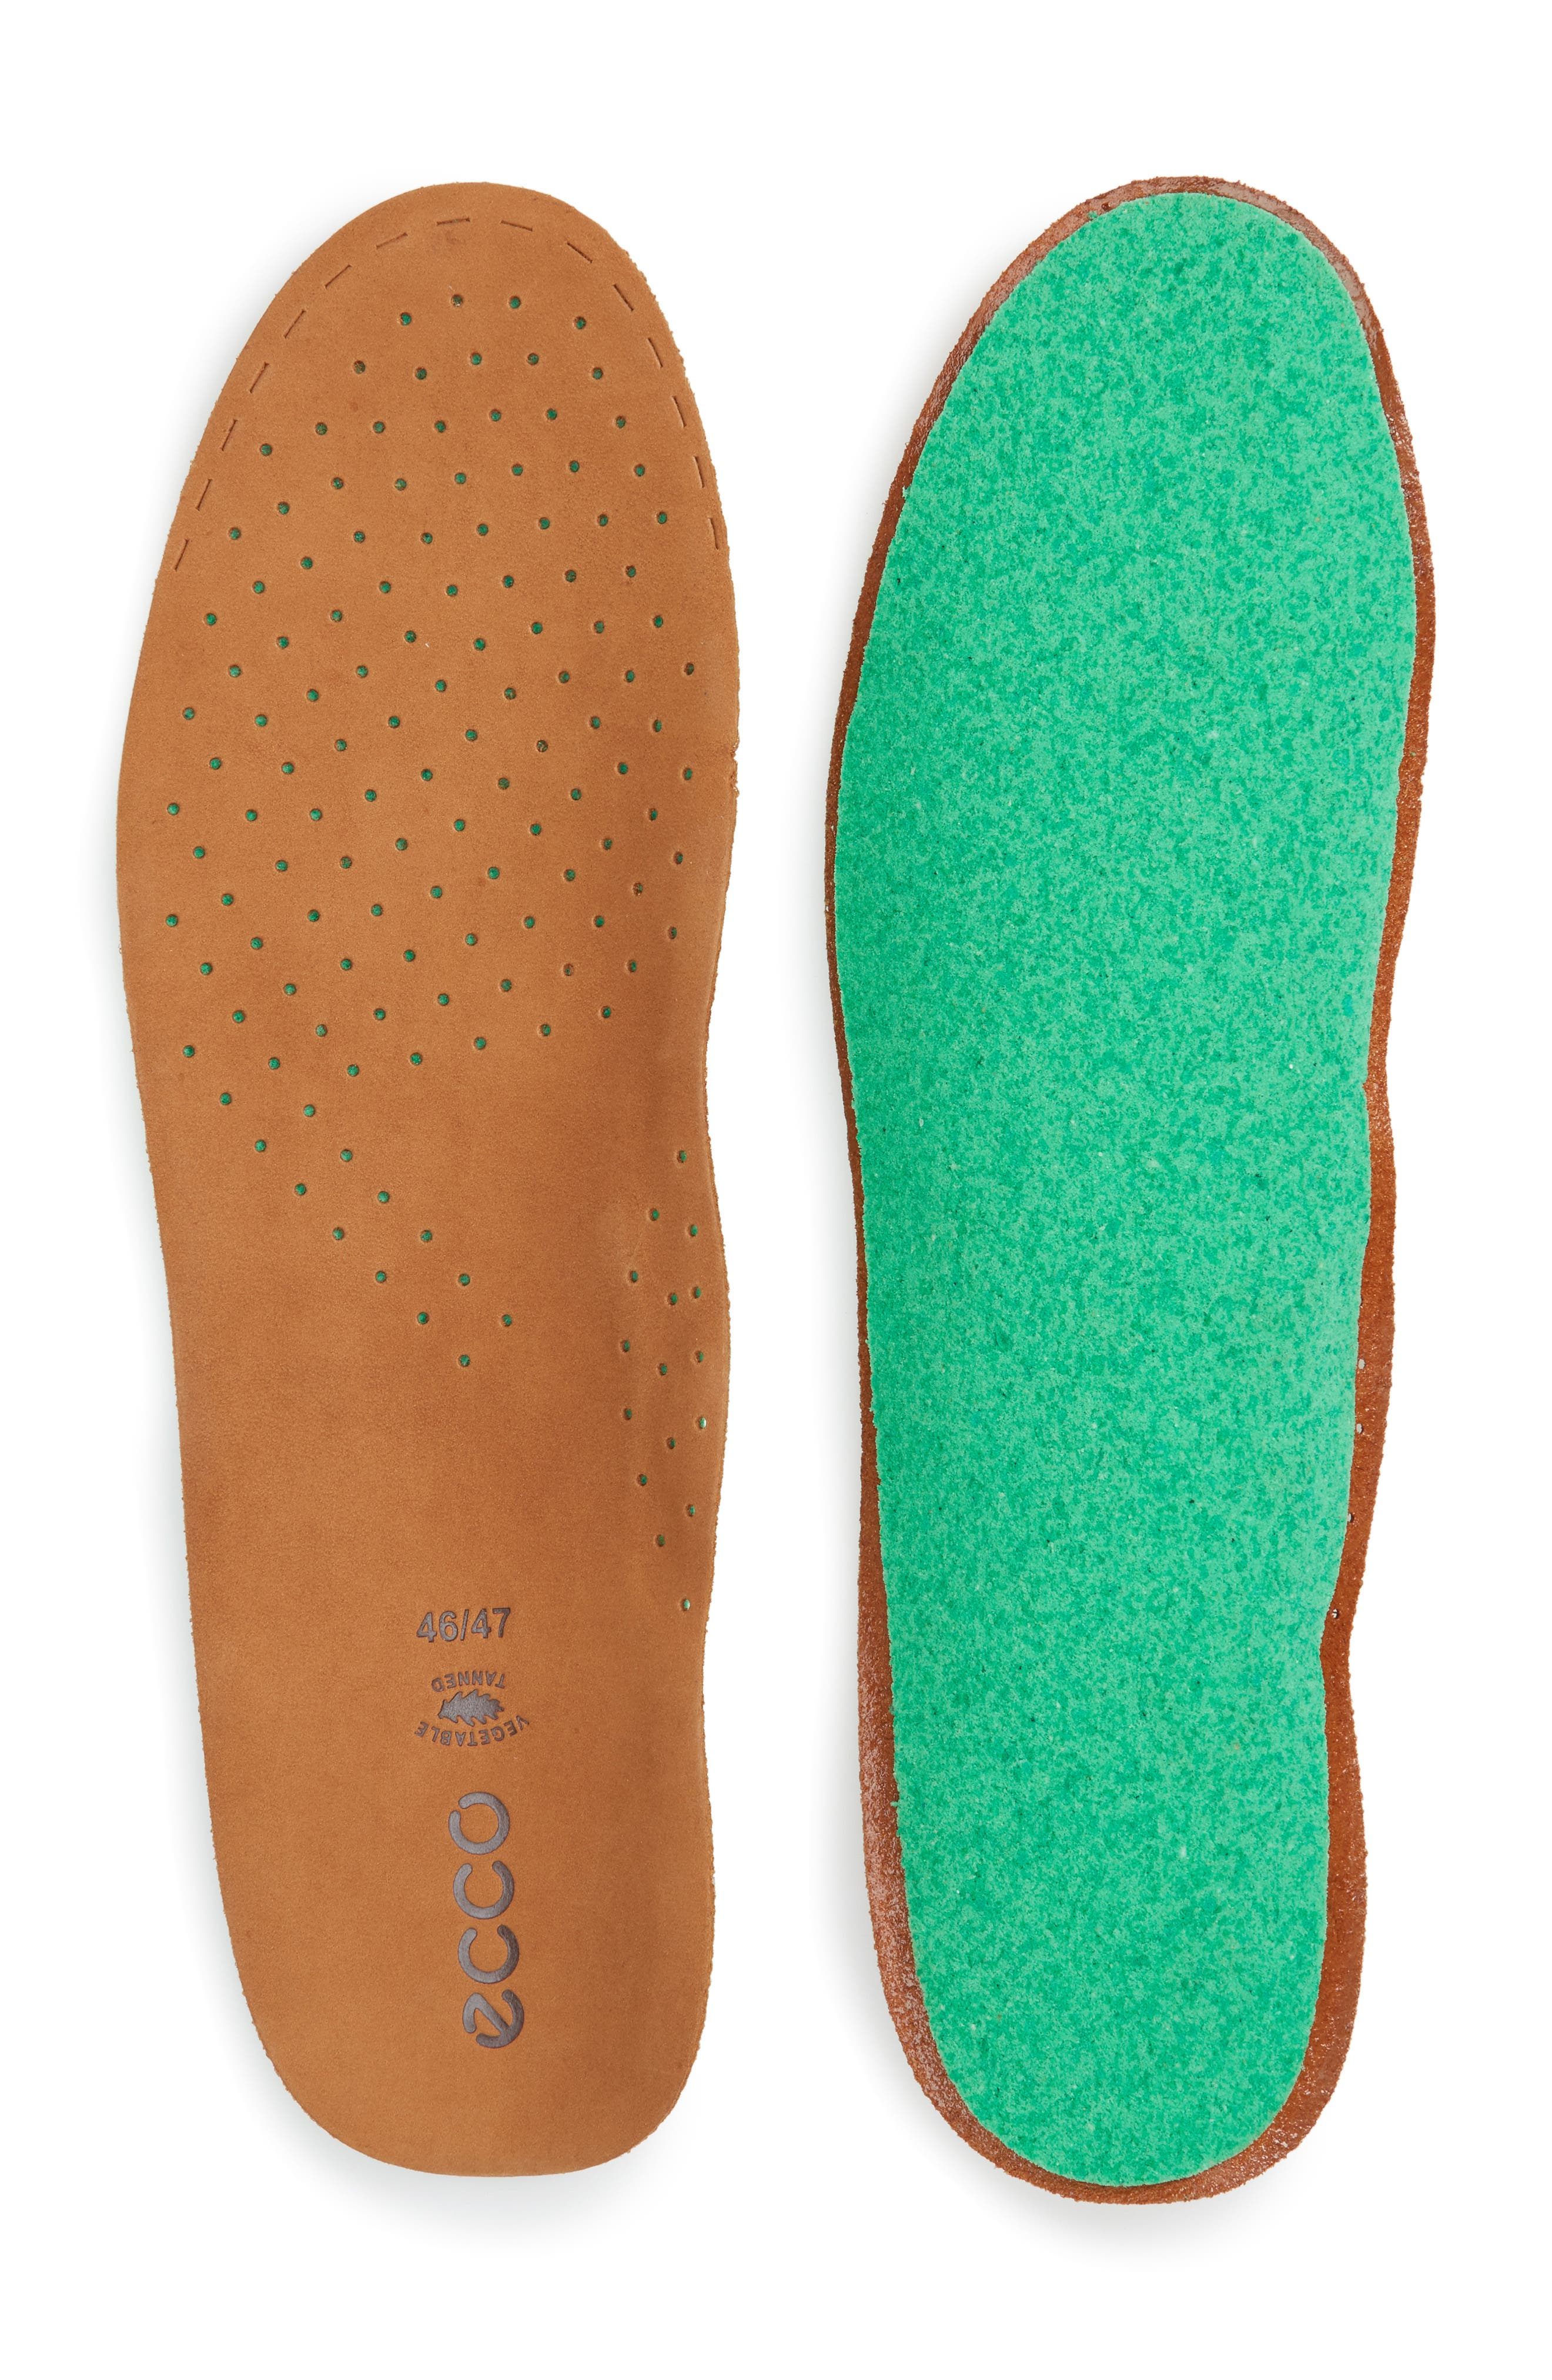 Comfort Everyday Insole,                         Main,                         color, Lion